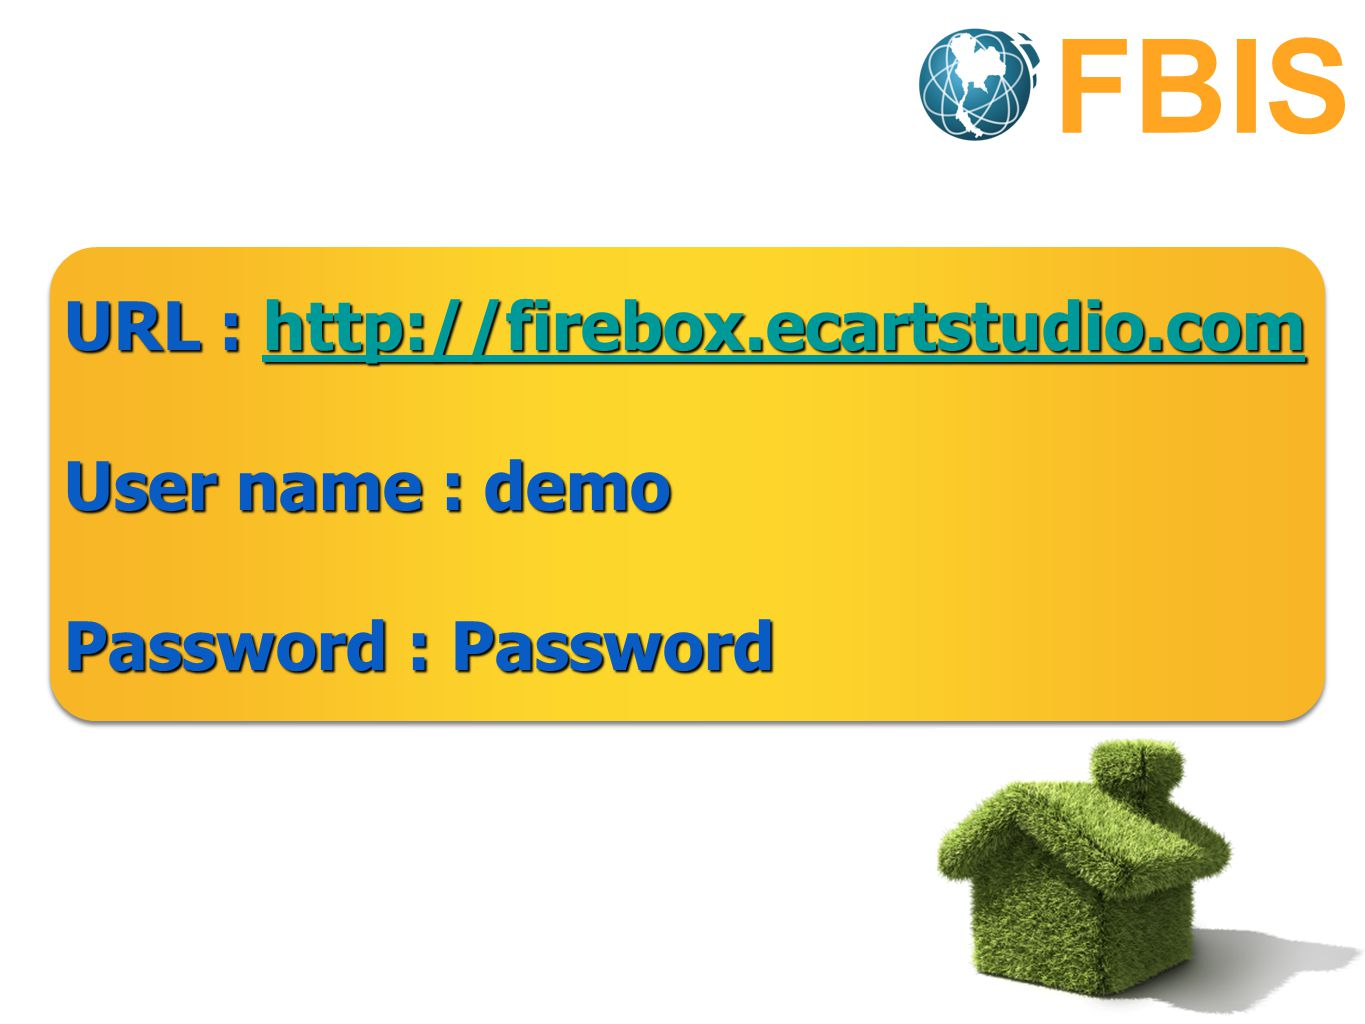 FBIS URL : http://firebox.ecartstudio.com User name : demo